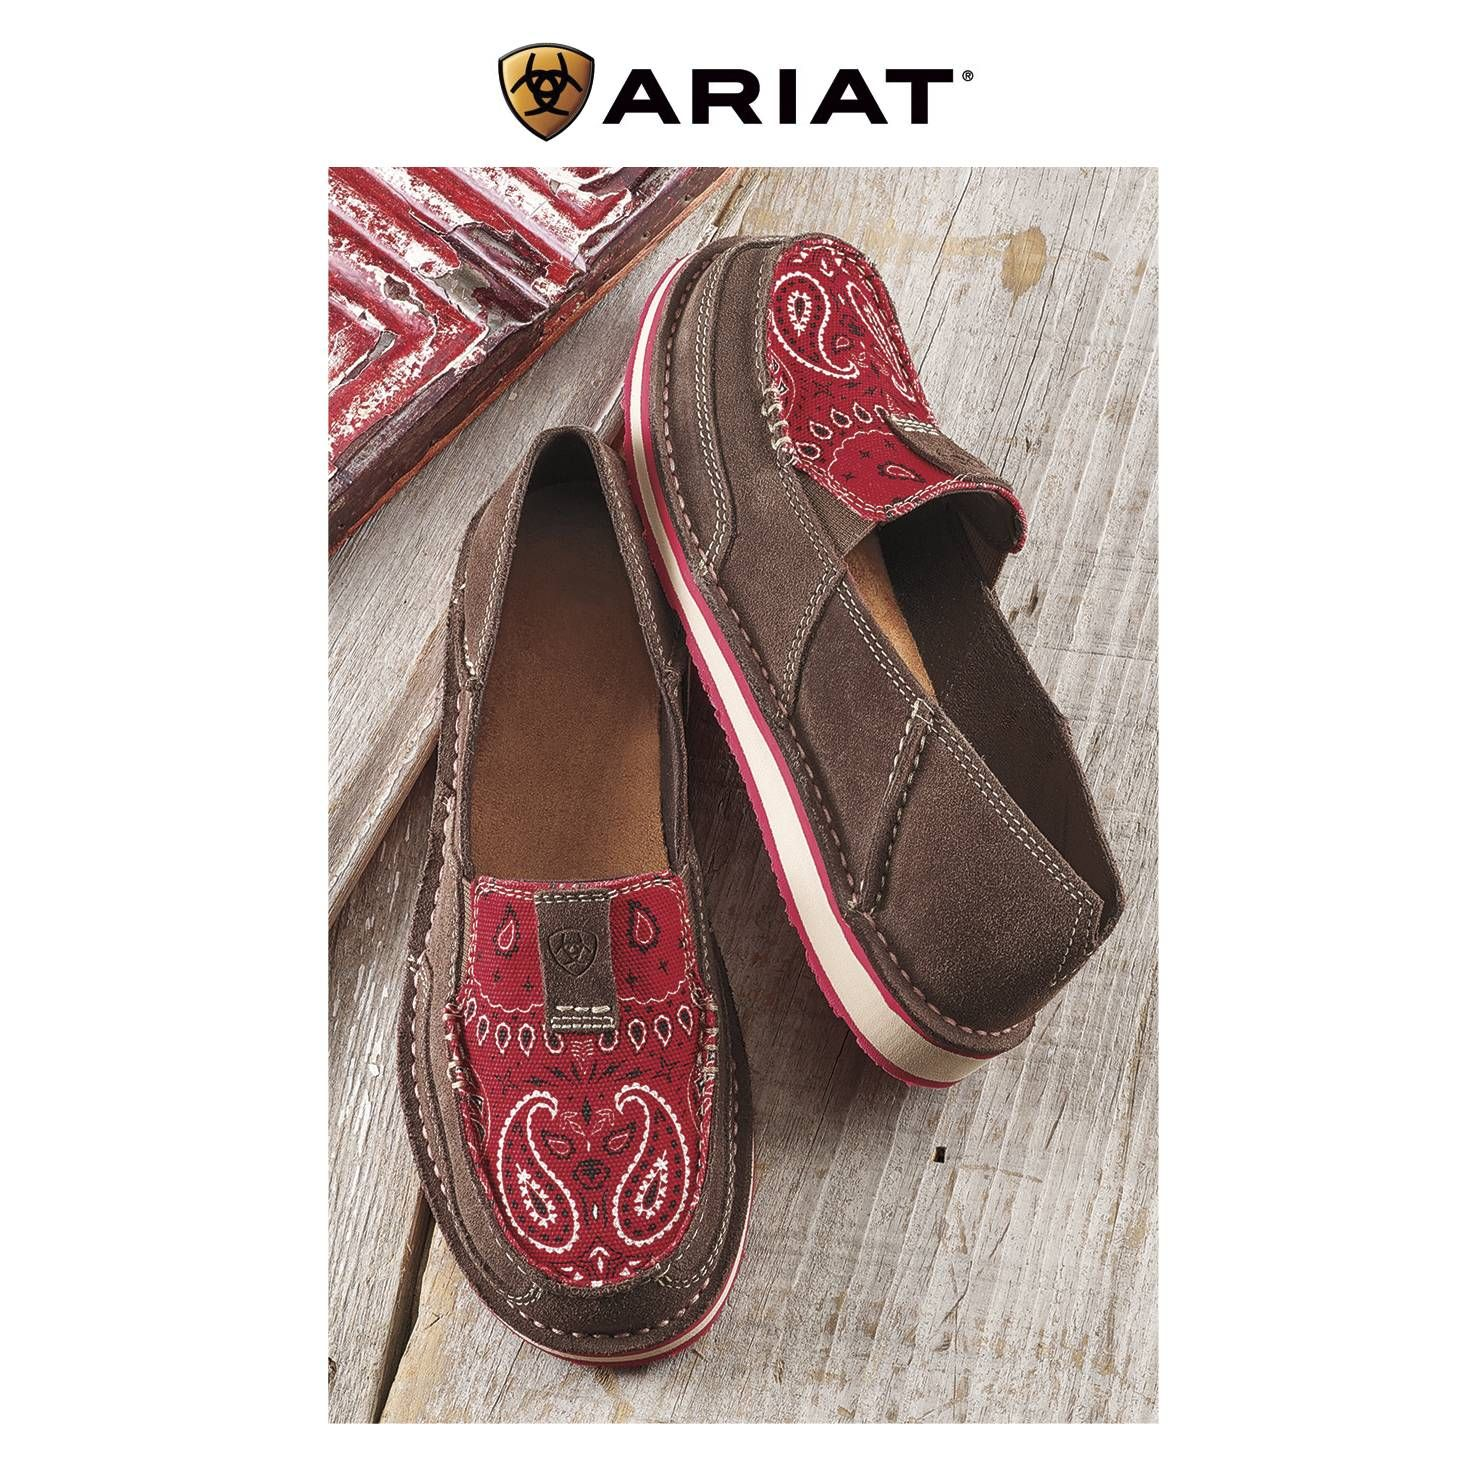 Ariat Red Bandana Slip On Shoes Cowgirl Delight Western Boots Women Red Bandana Slip On Shoes